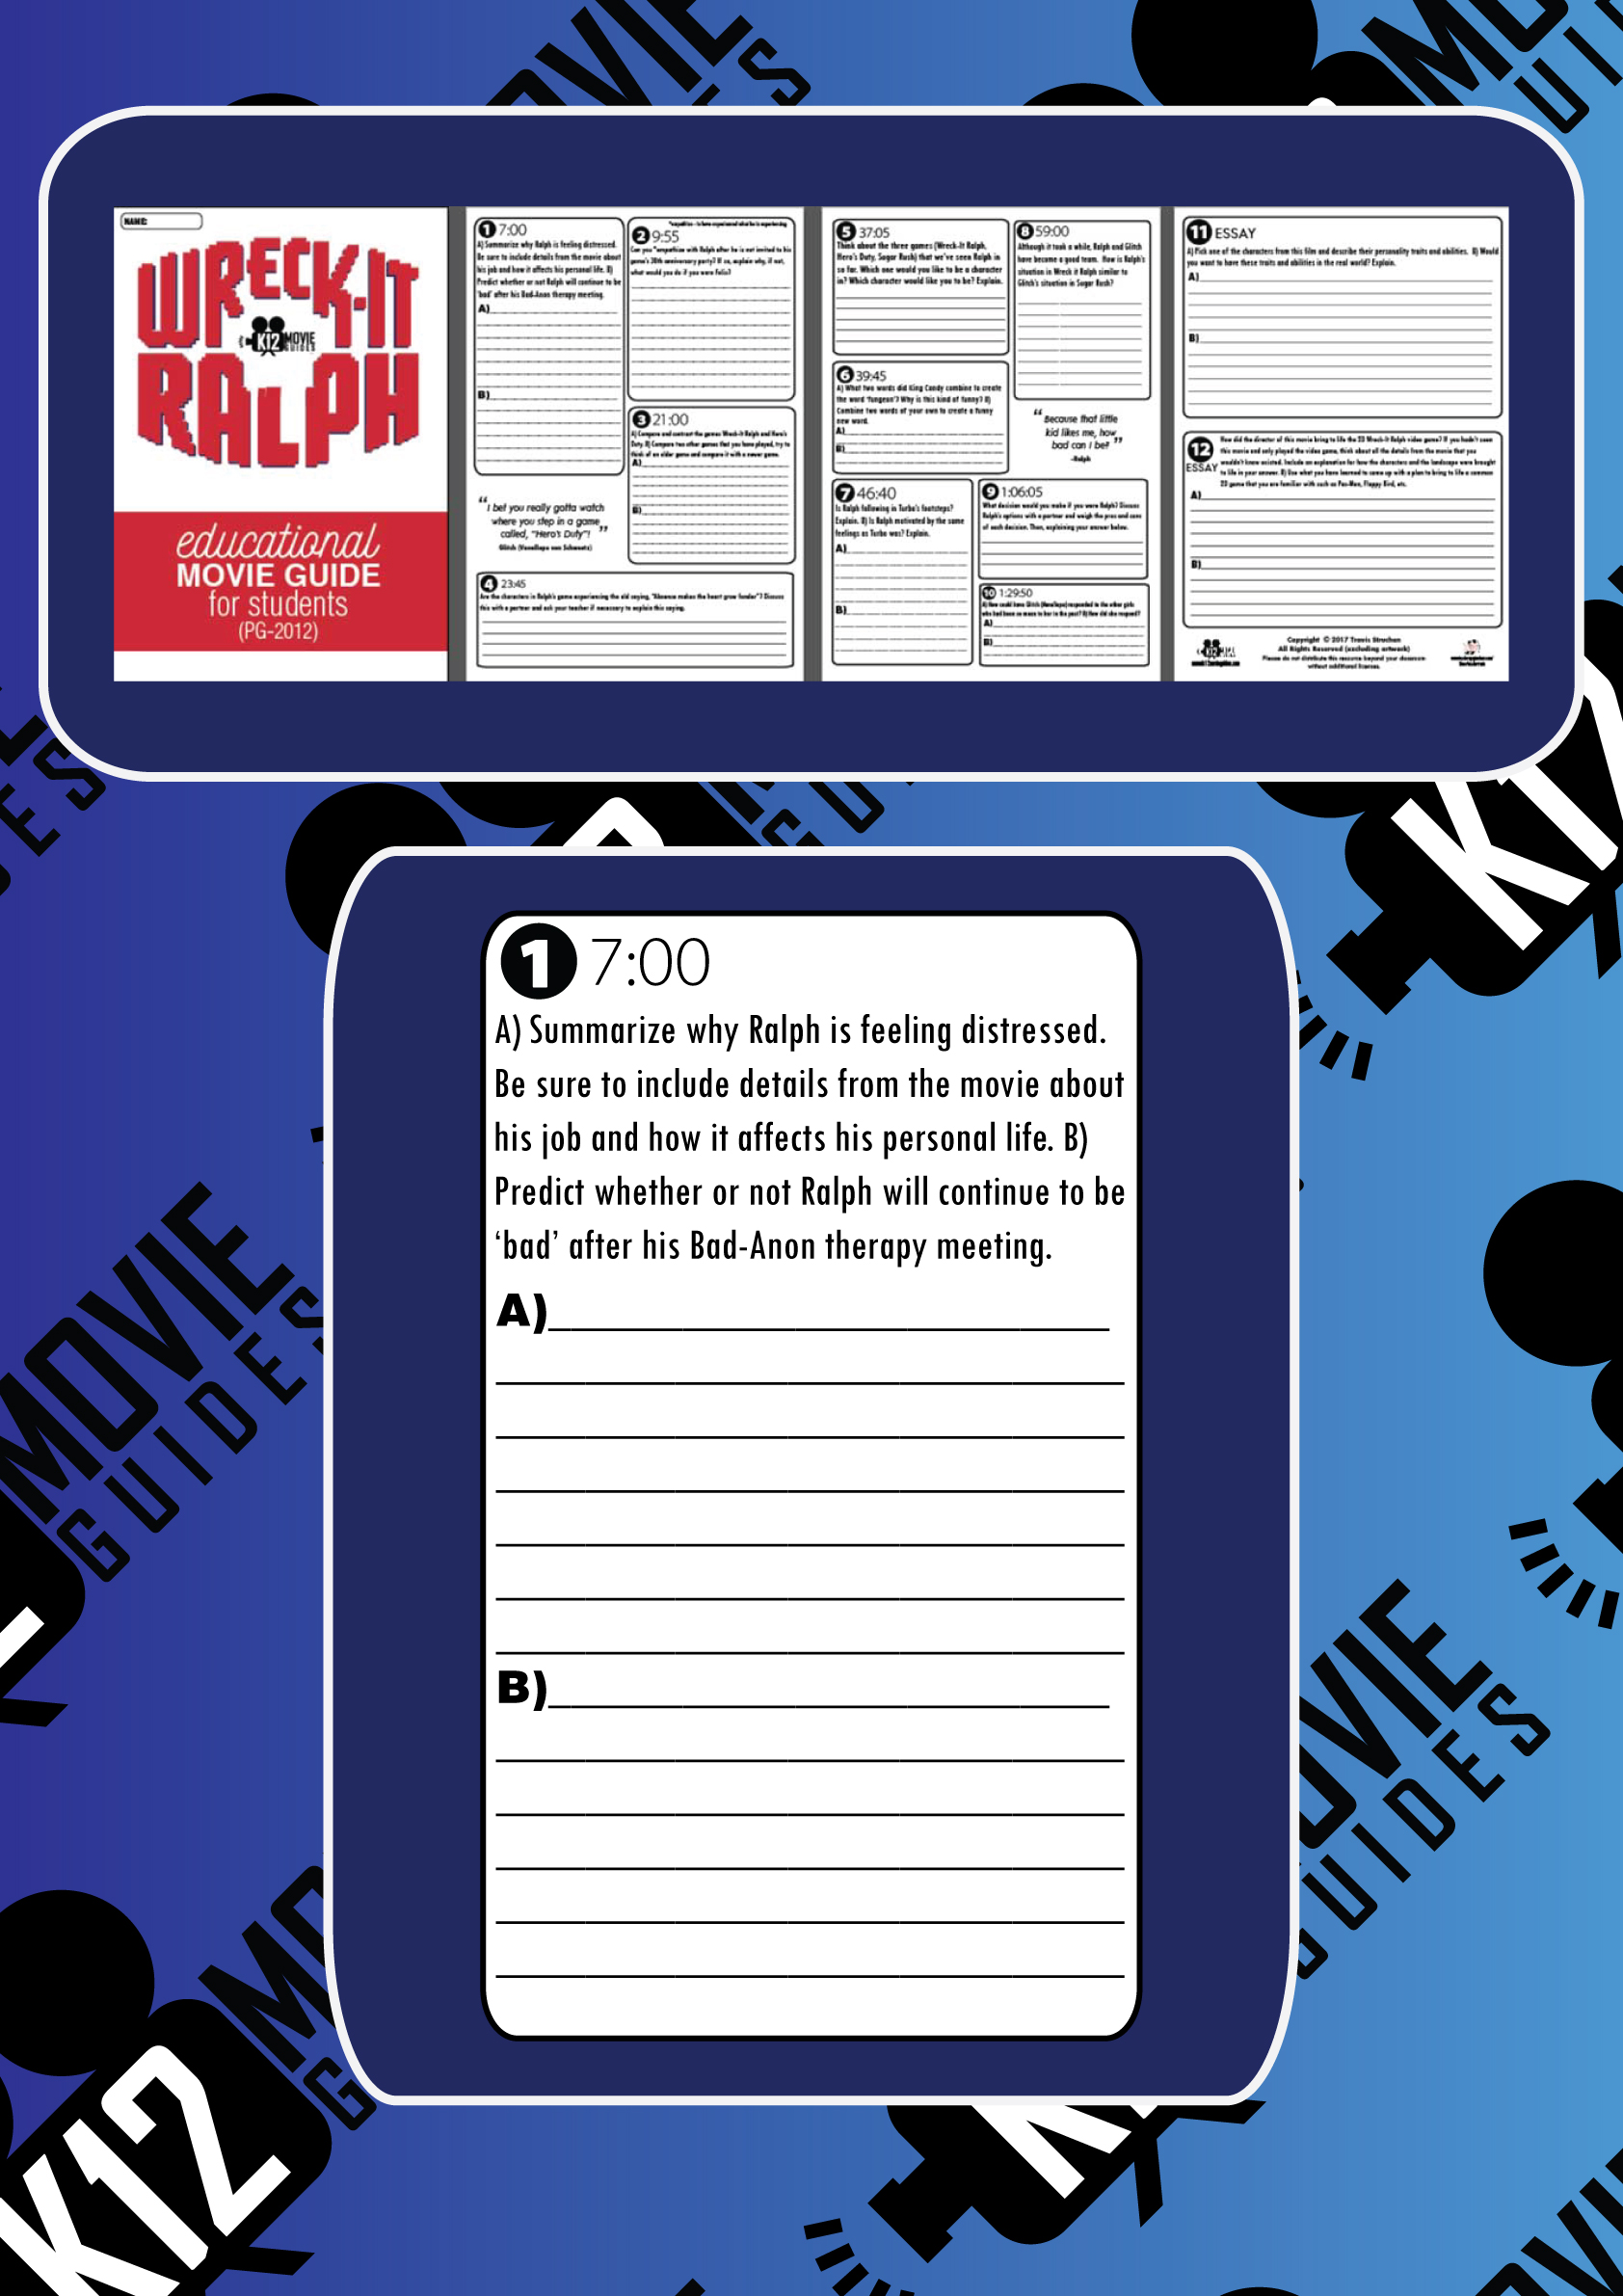 Wreck-It Ralph Movie Guide Questions Sample